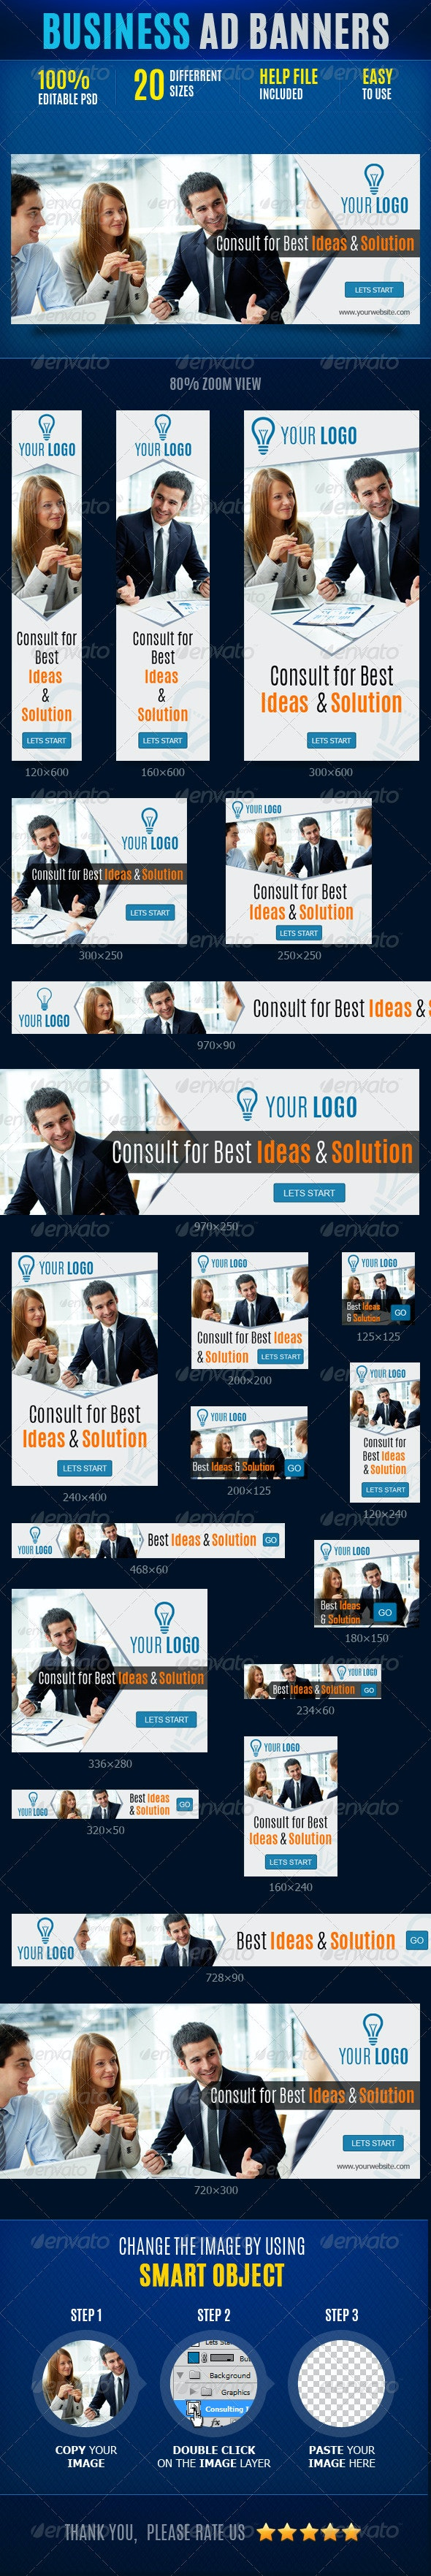 Business Web Ad Marketing Banners - Banners & Ads Web Elements